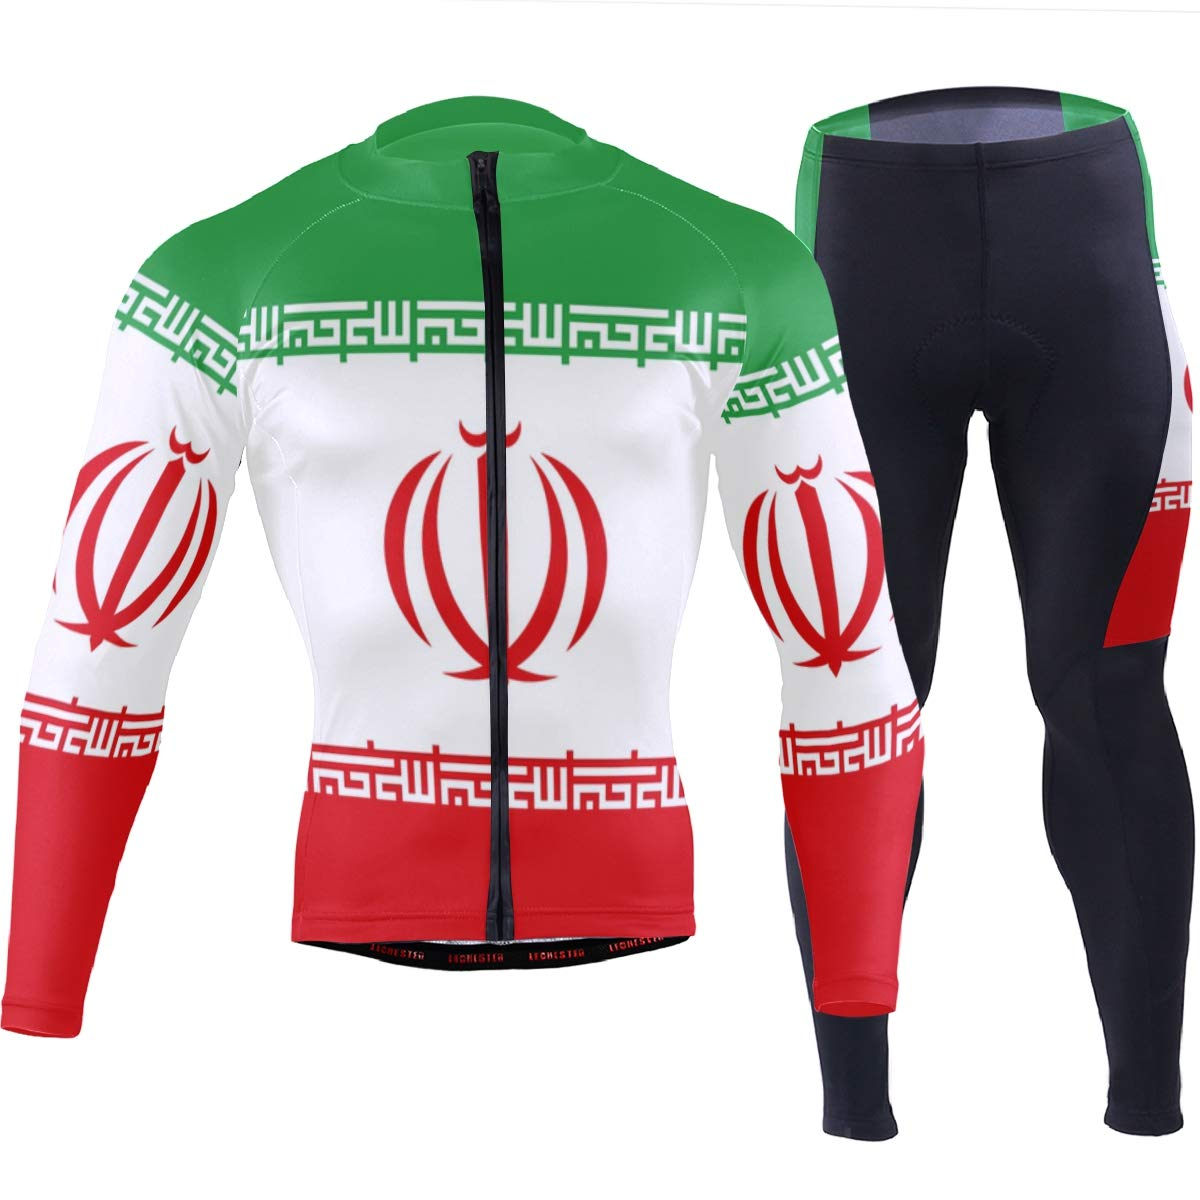 CHINEIN Men's Cycling Jersey Long Sleeve with 3 Rear Pockets Suit Iran Flag by CHINEIN